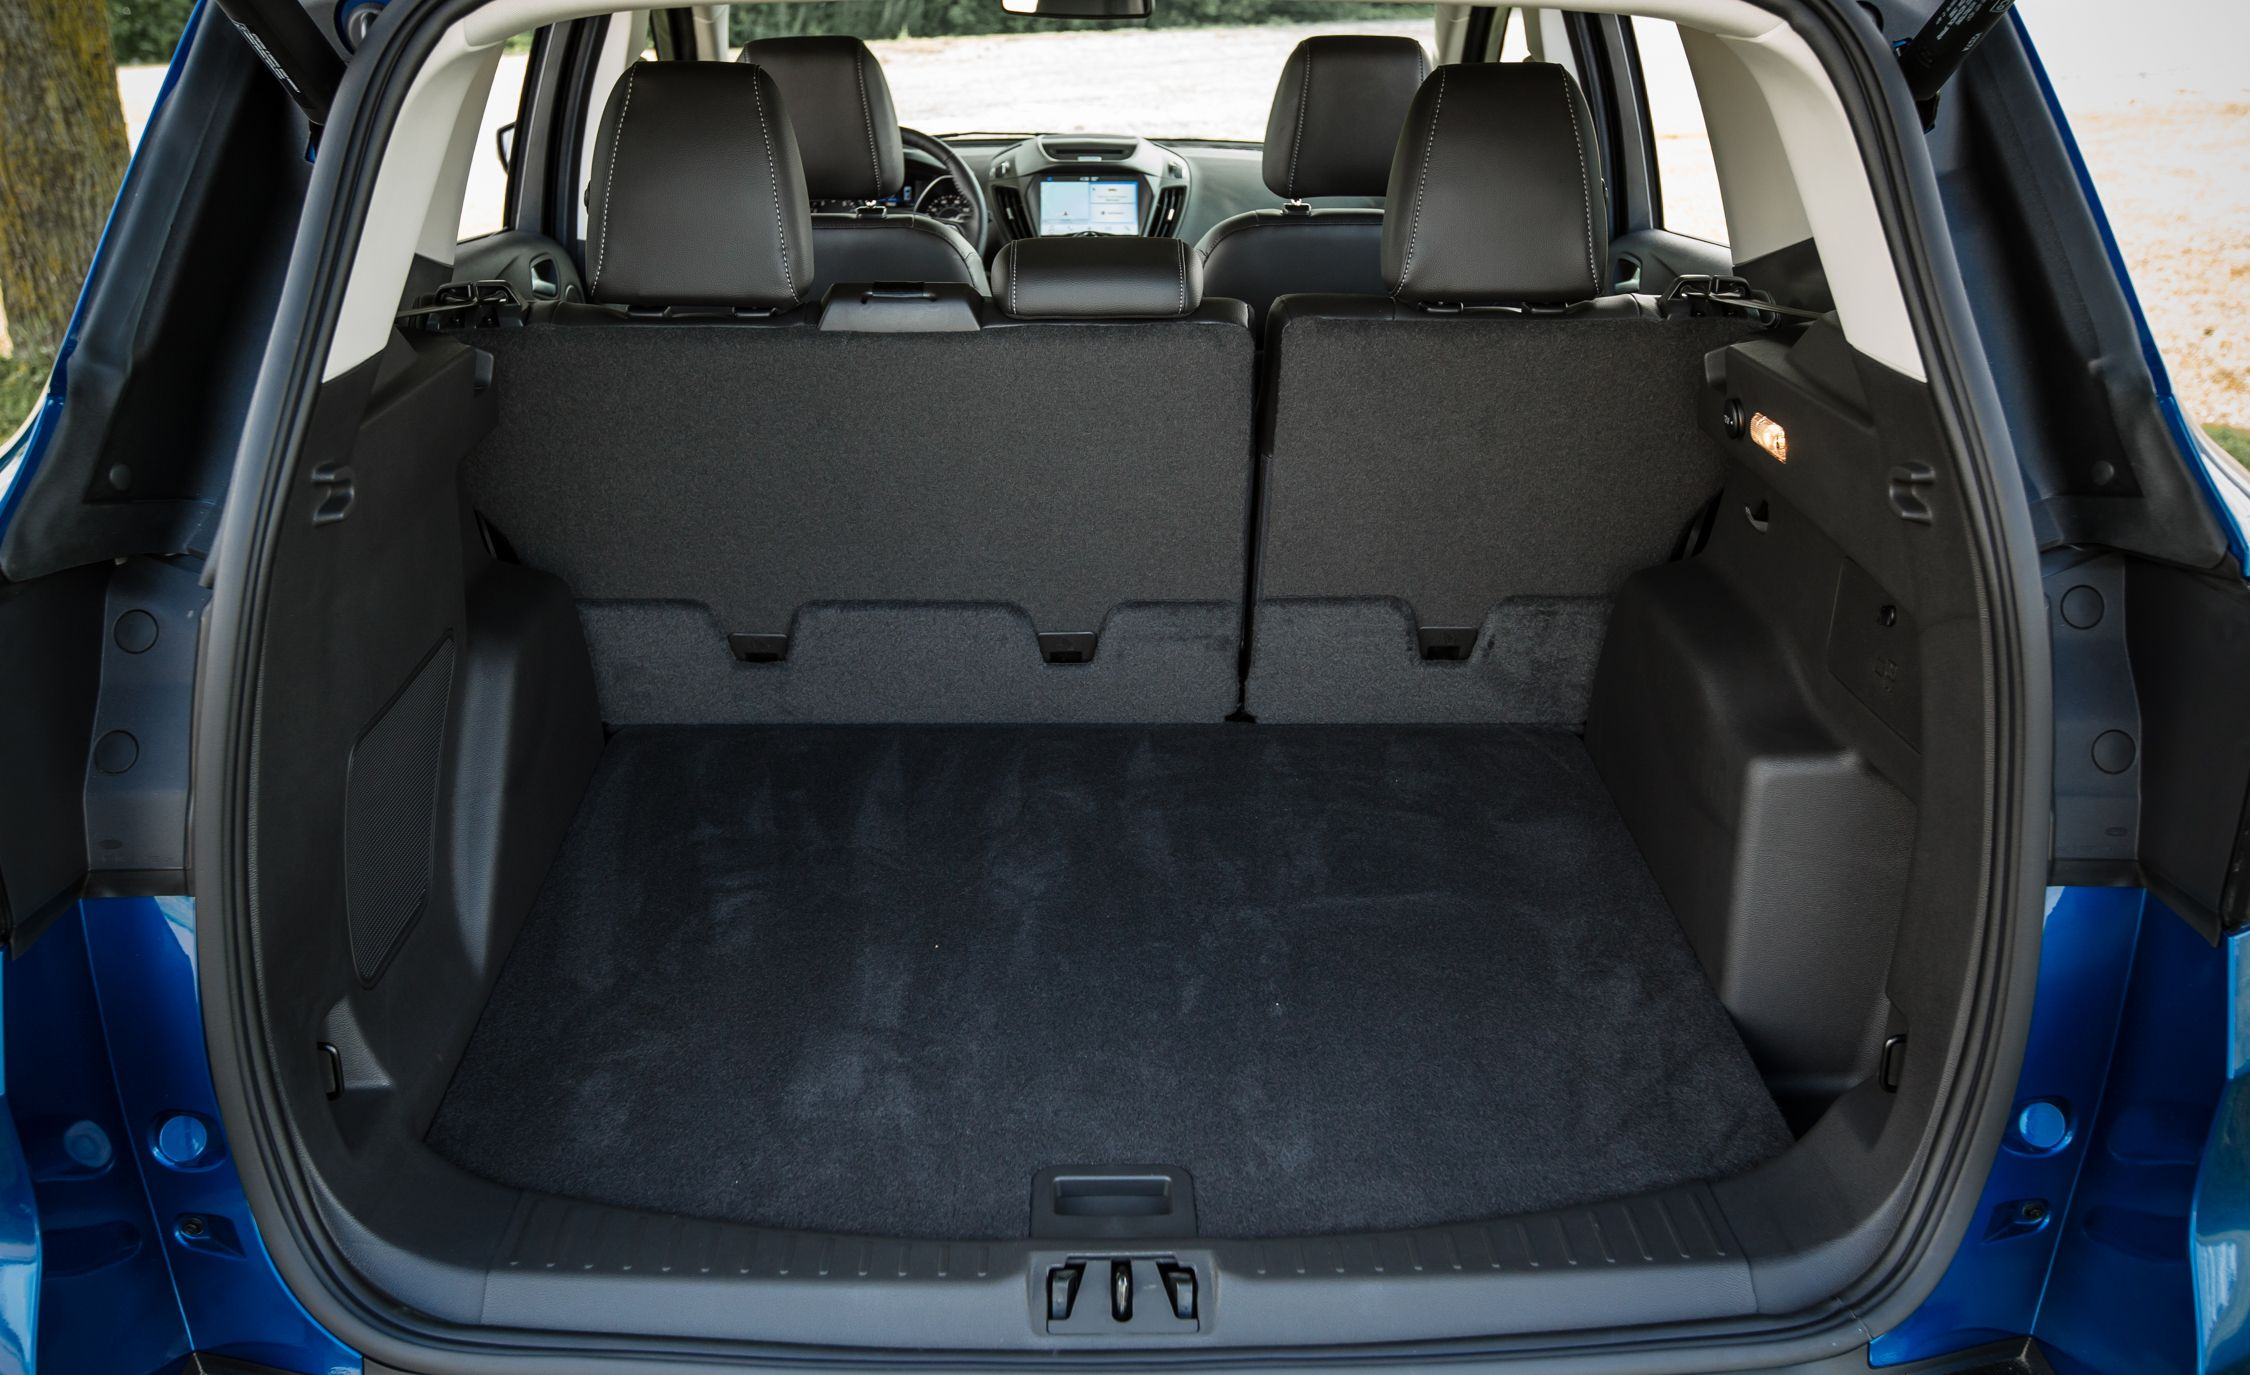 2017 ford escape cargo space and storage review car and driver. Black Bedroom Furniture Sets. Home Design Ideas